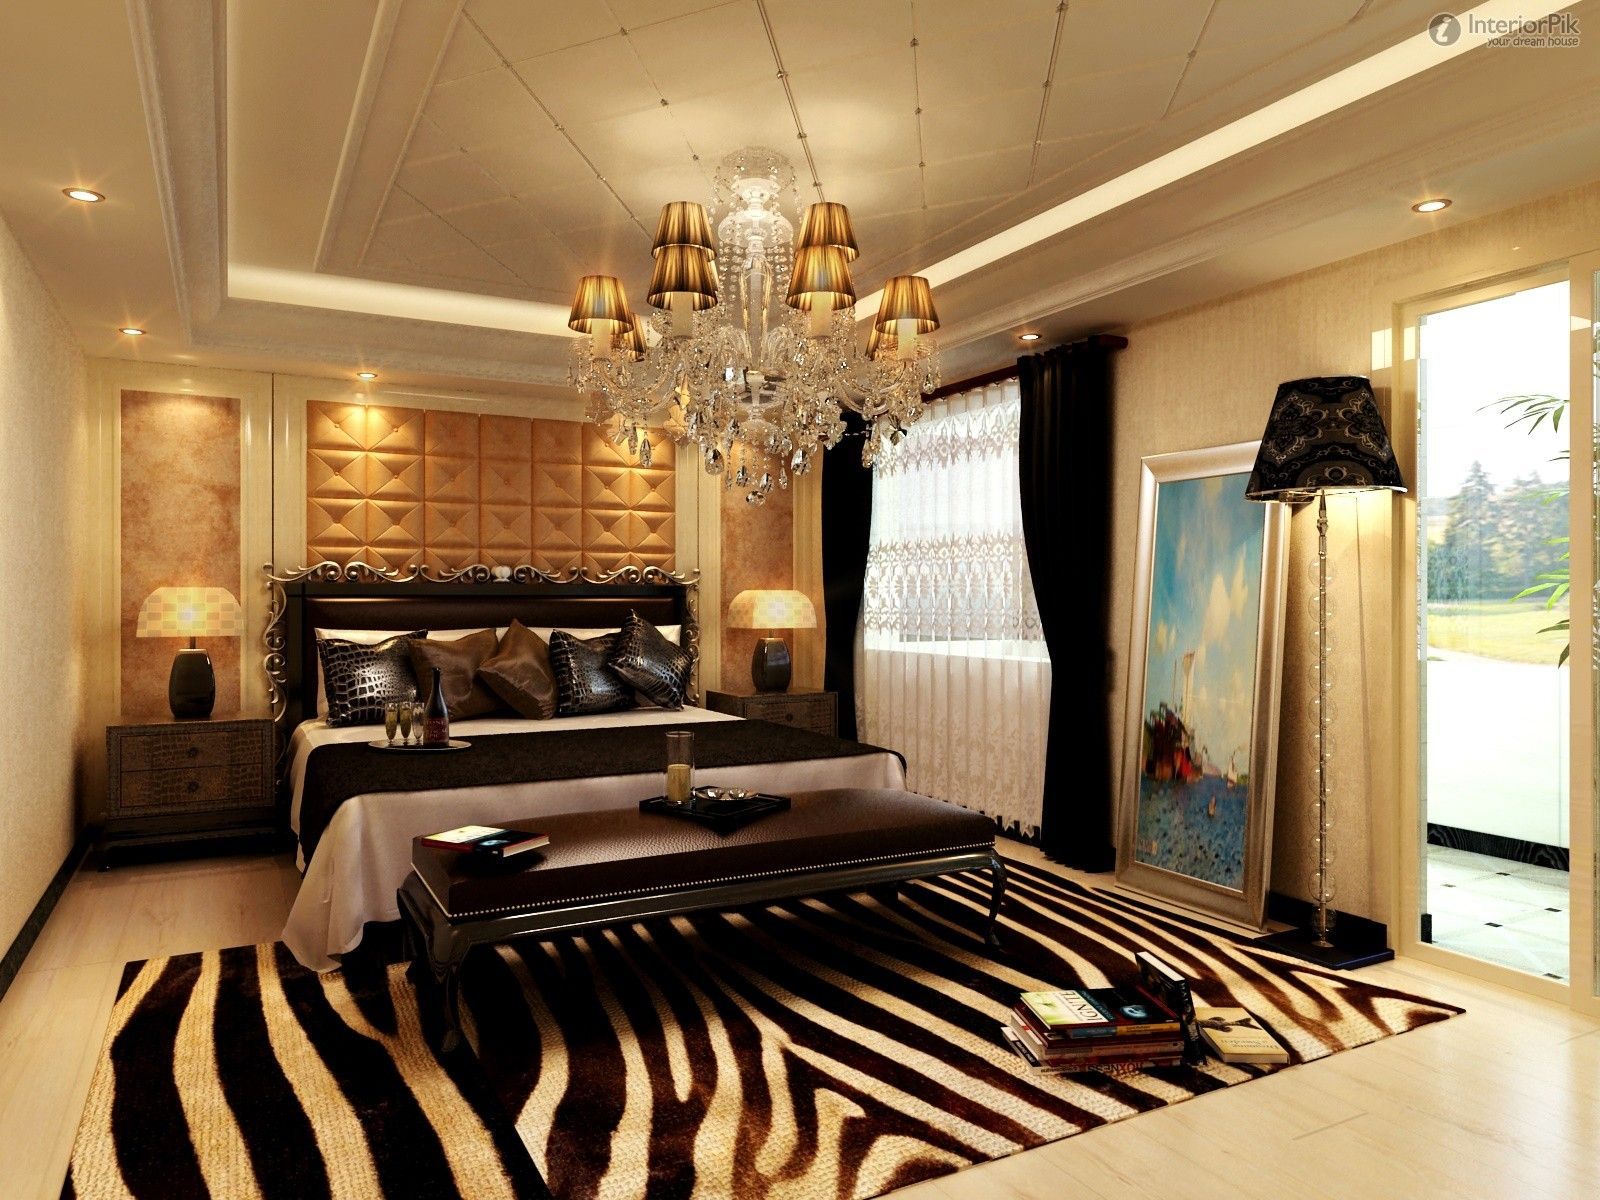 Amazing Home Decorating Modern Bedroom Design Ideas Showing Execellent Gold Shade Crystal Chandelier And Fascinating Some